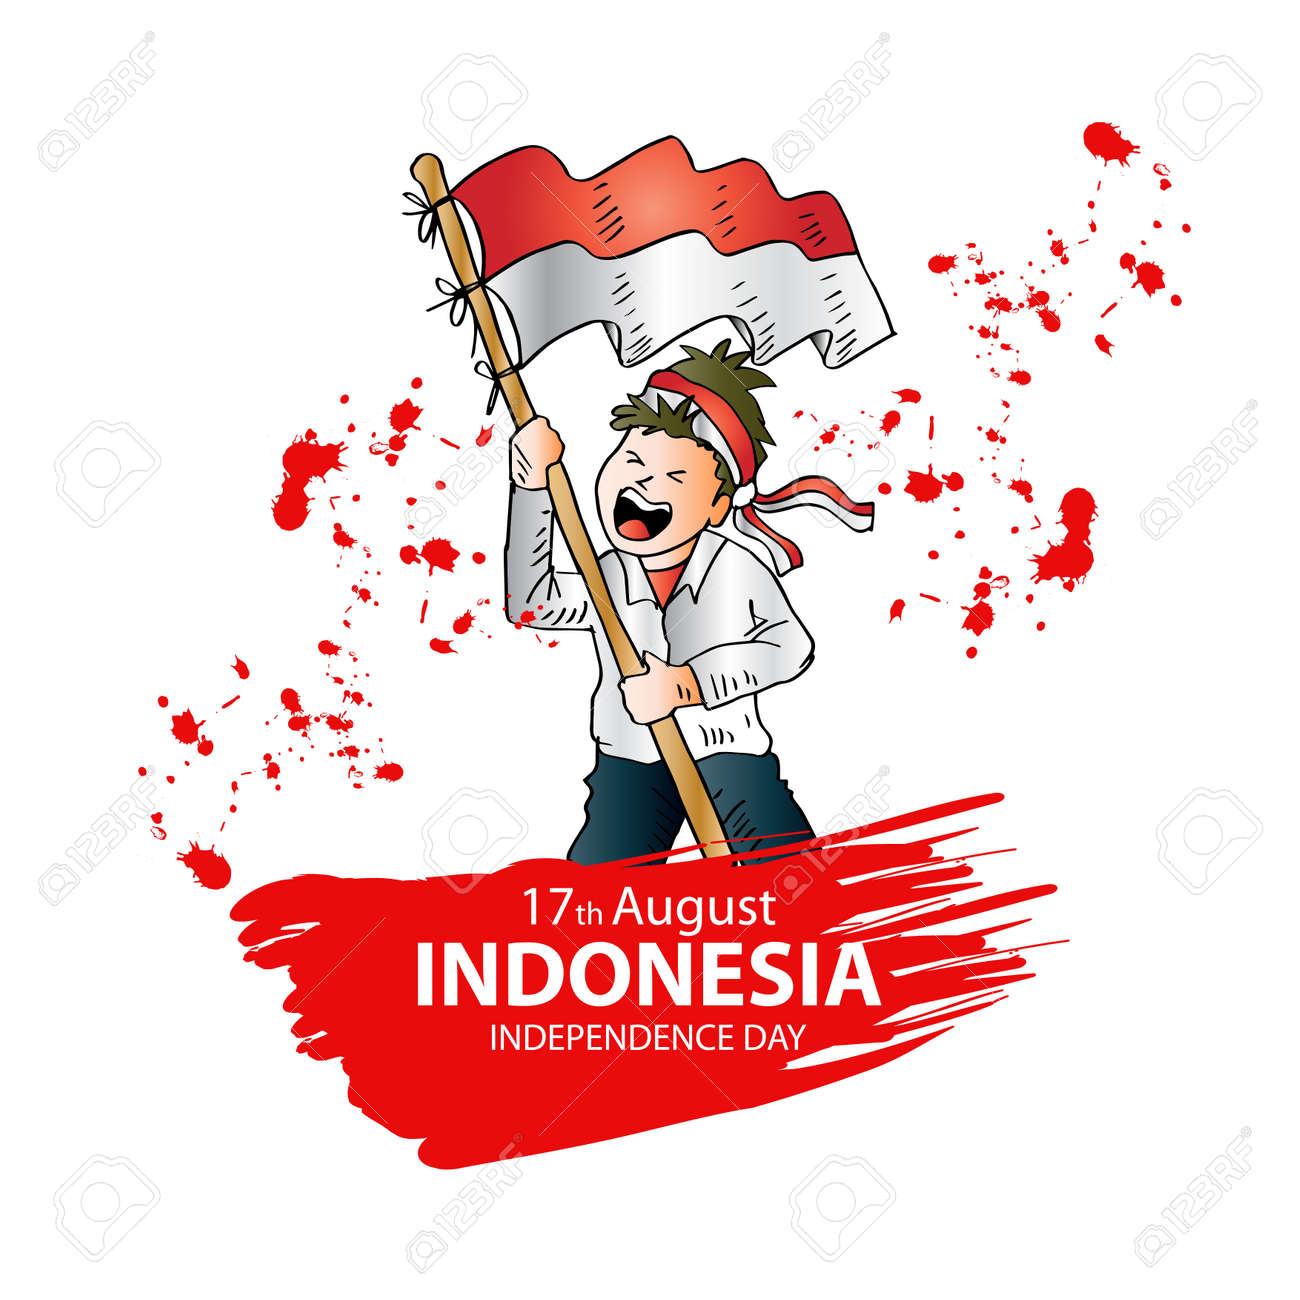 17 august indonesia independence day greeting card royalty free indonesia independence day greeting card stock vector 104457508 m4hsunfo